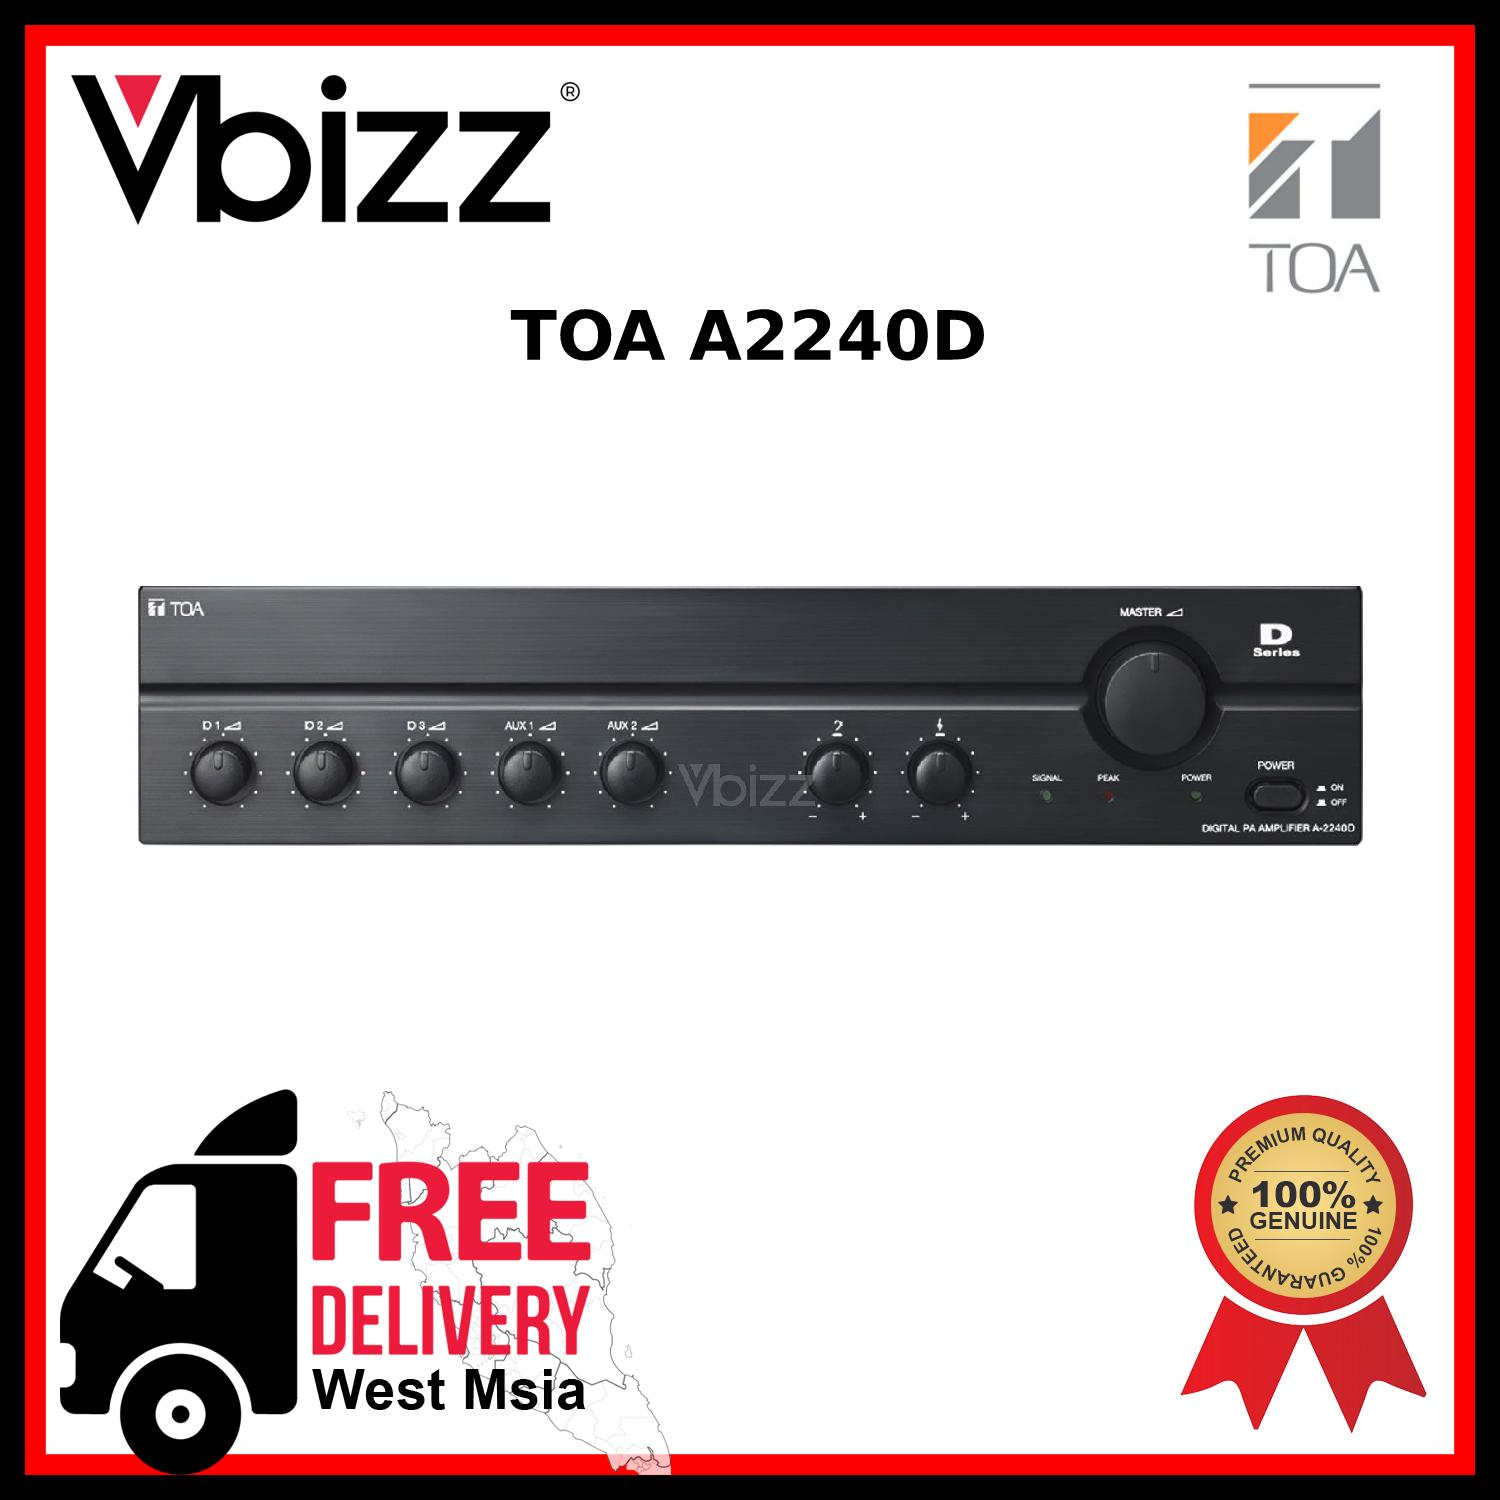 TOA A2240D *FREE DELIVERY* 240W Digital Mixer Amplifier